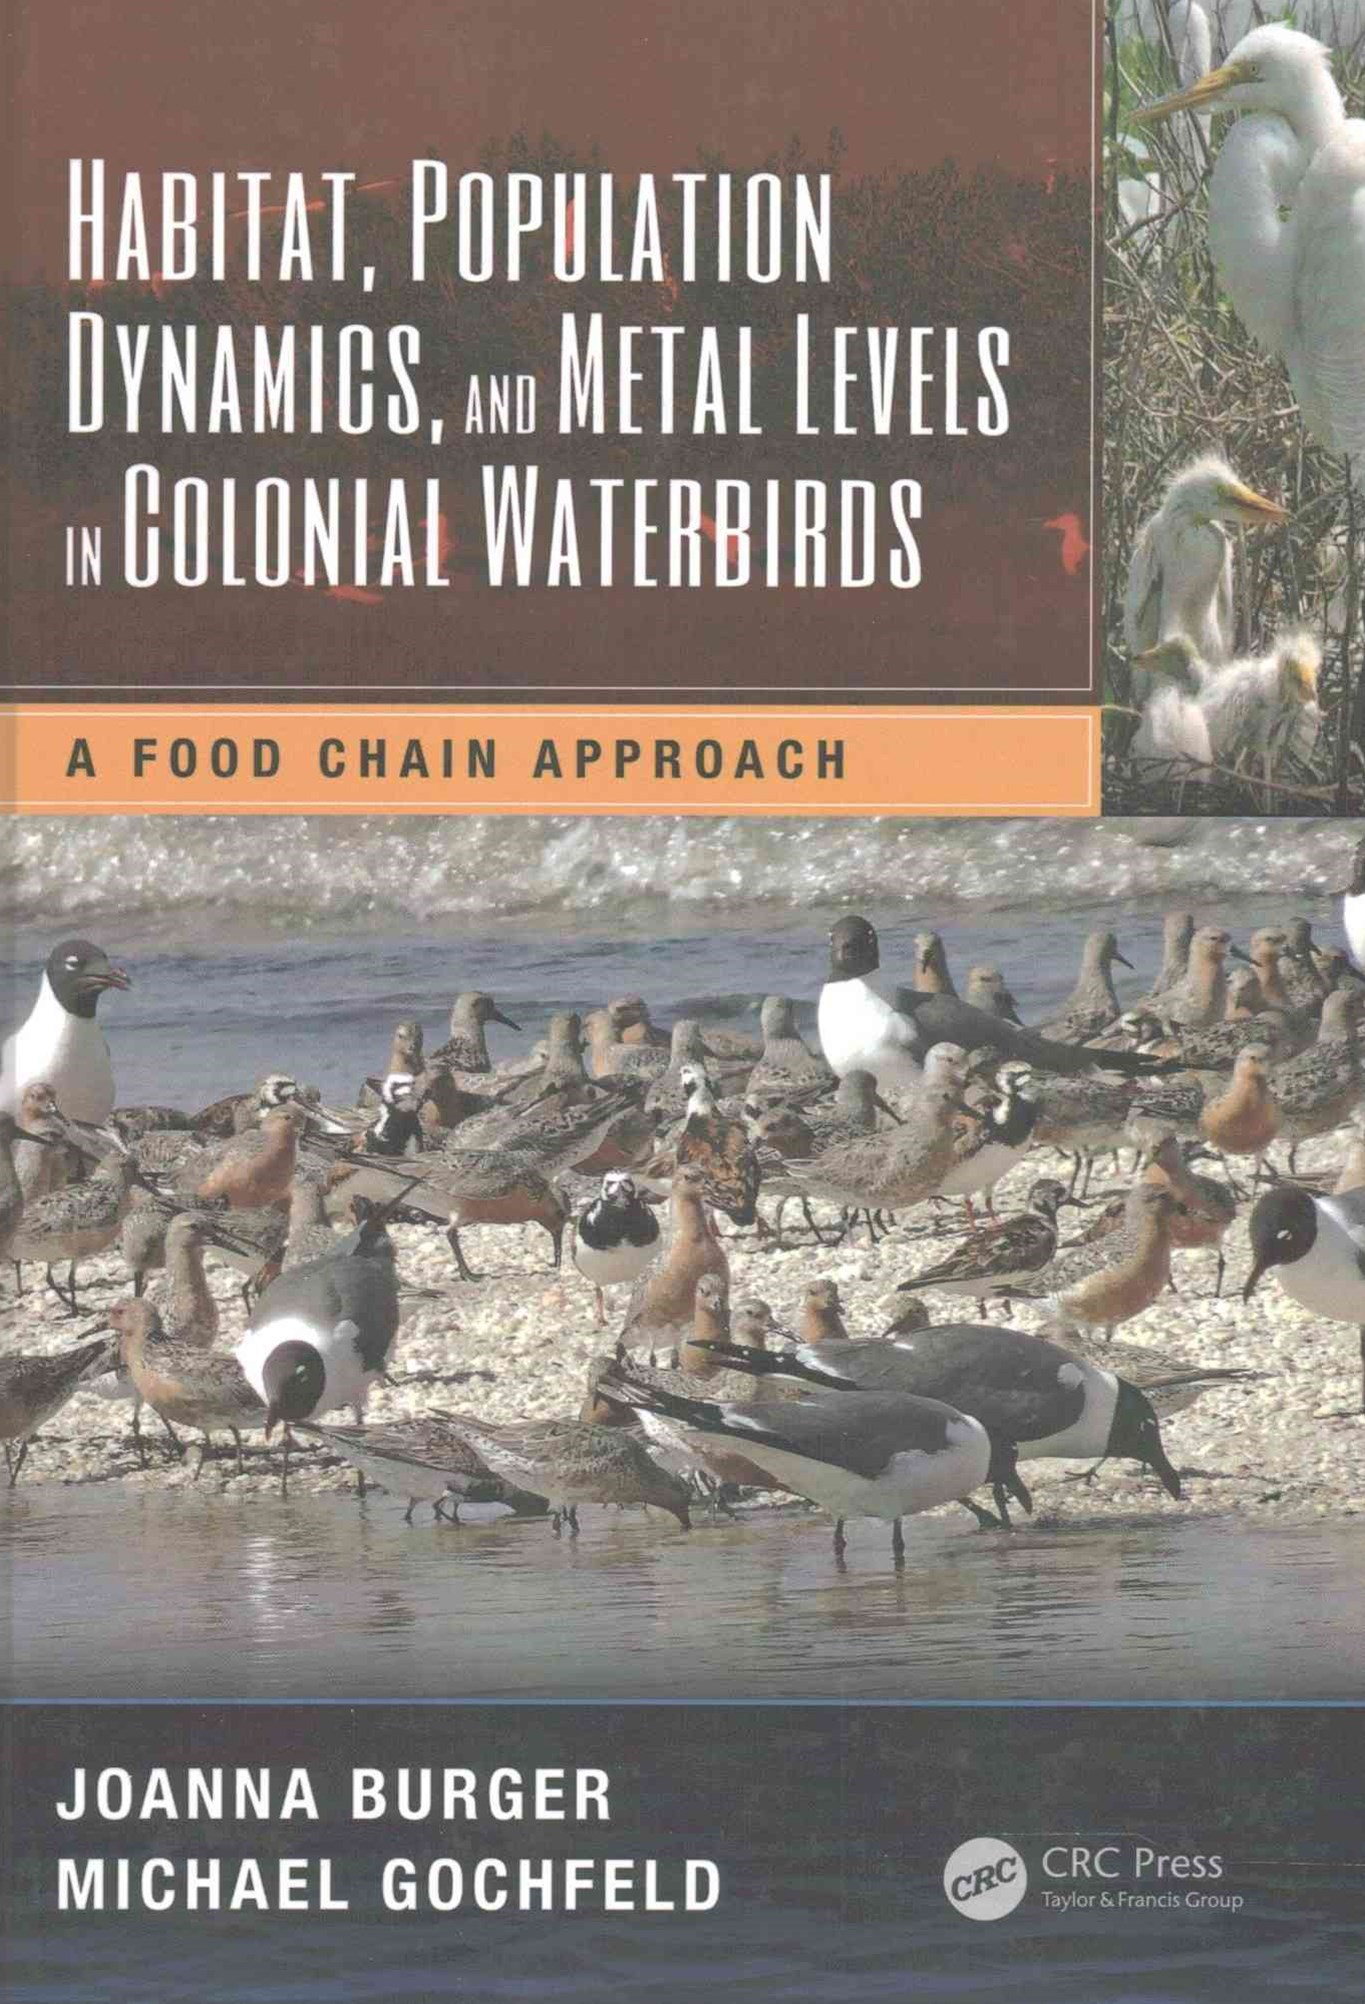 Population Dynamics and Metal Levels in Waterbirds